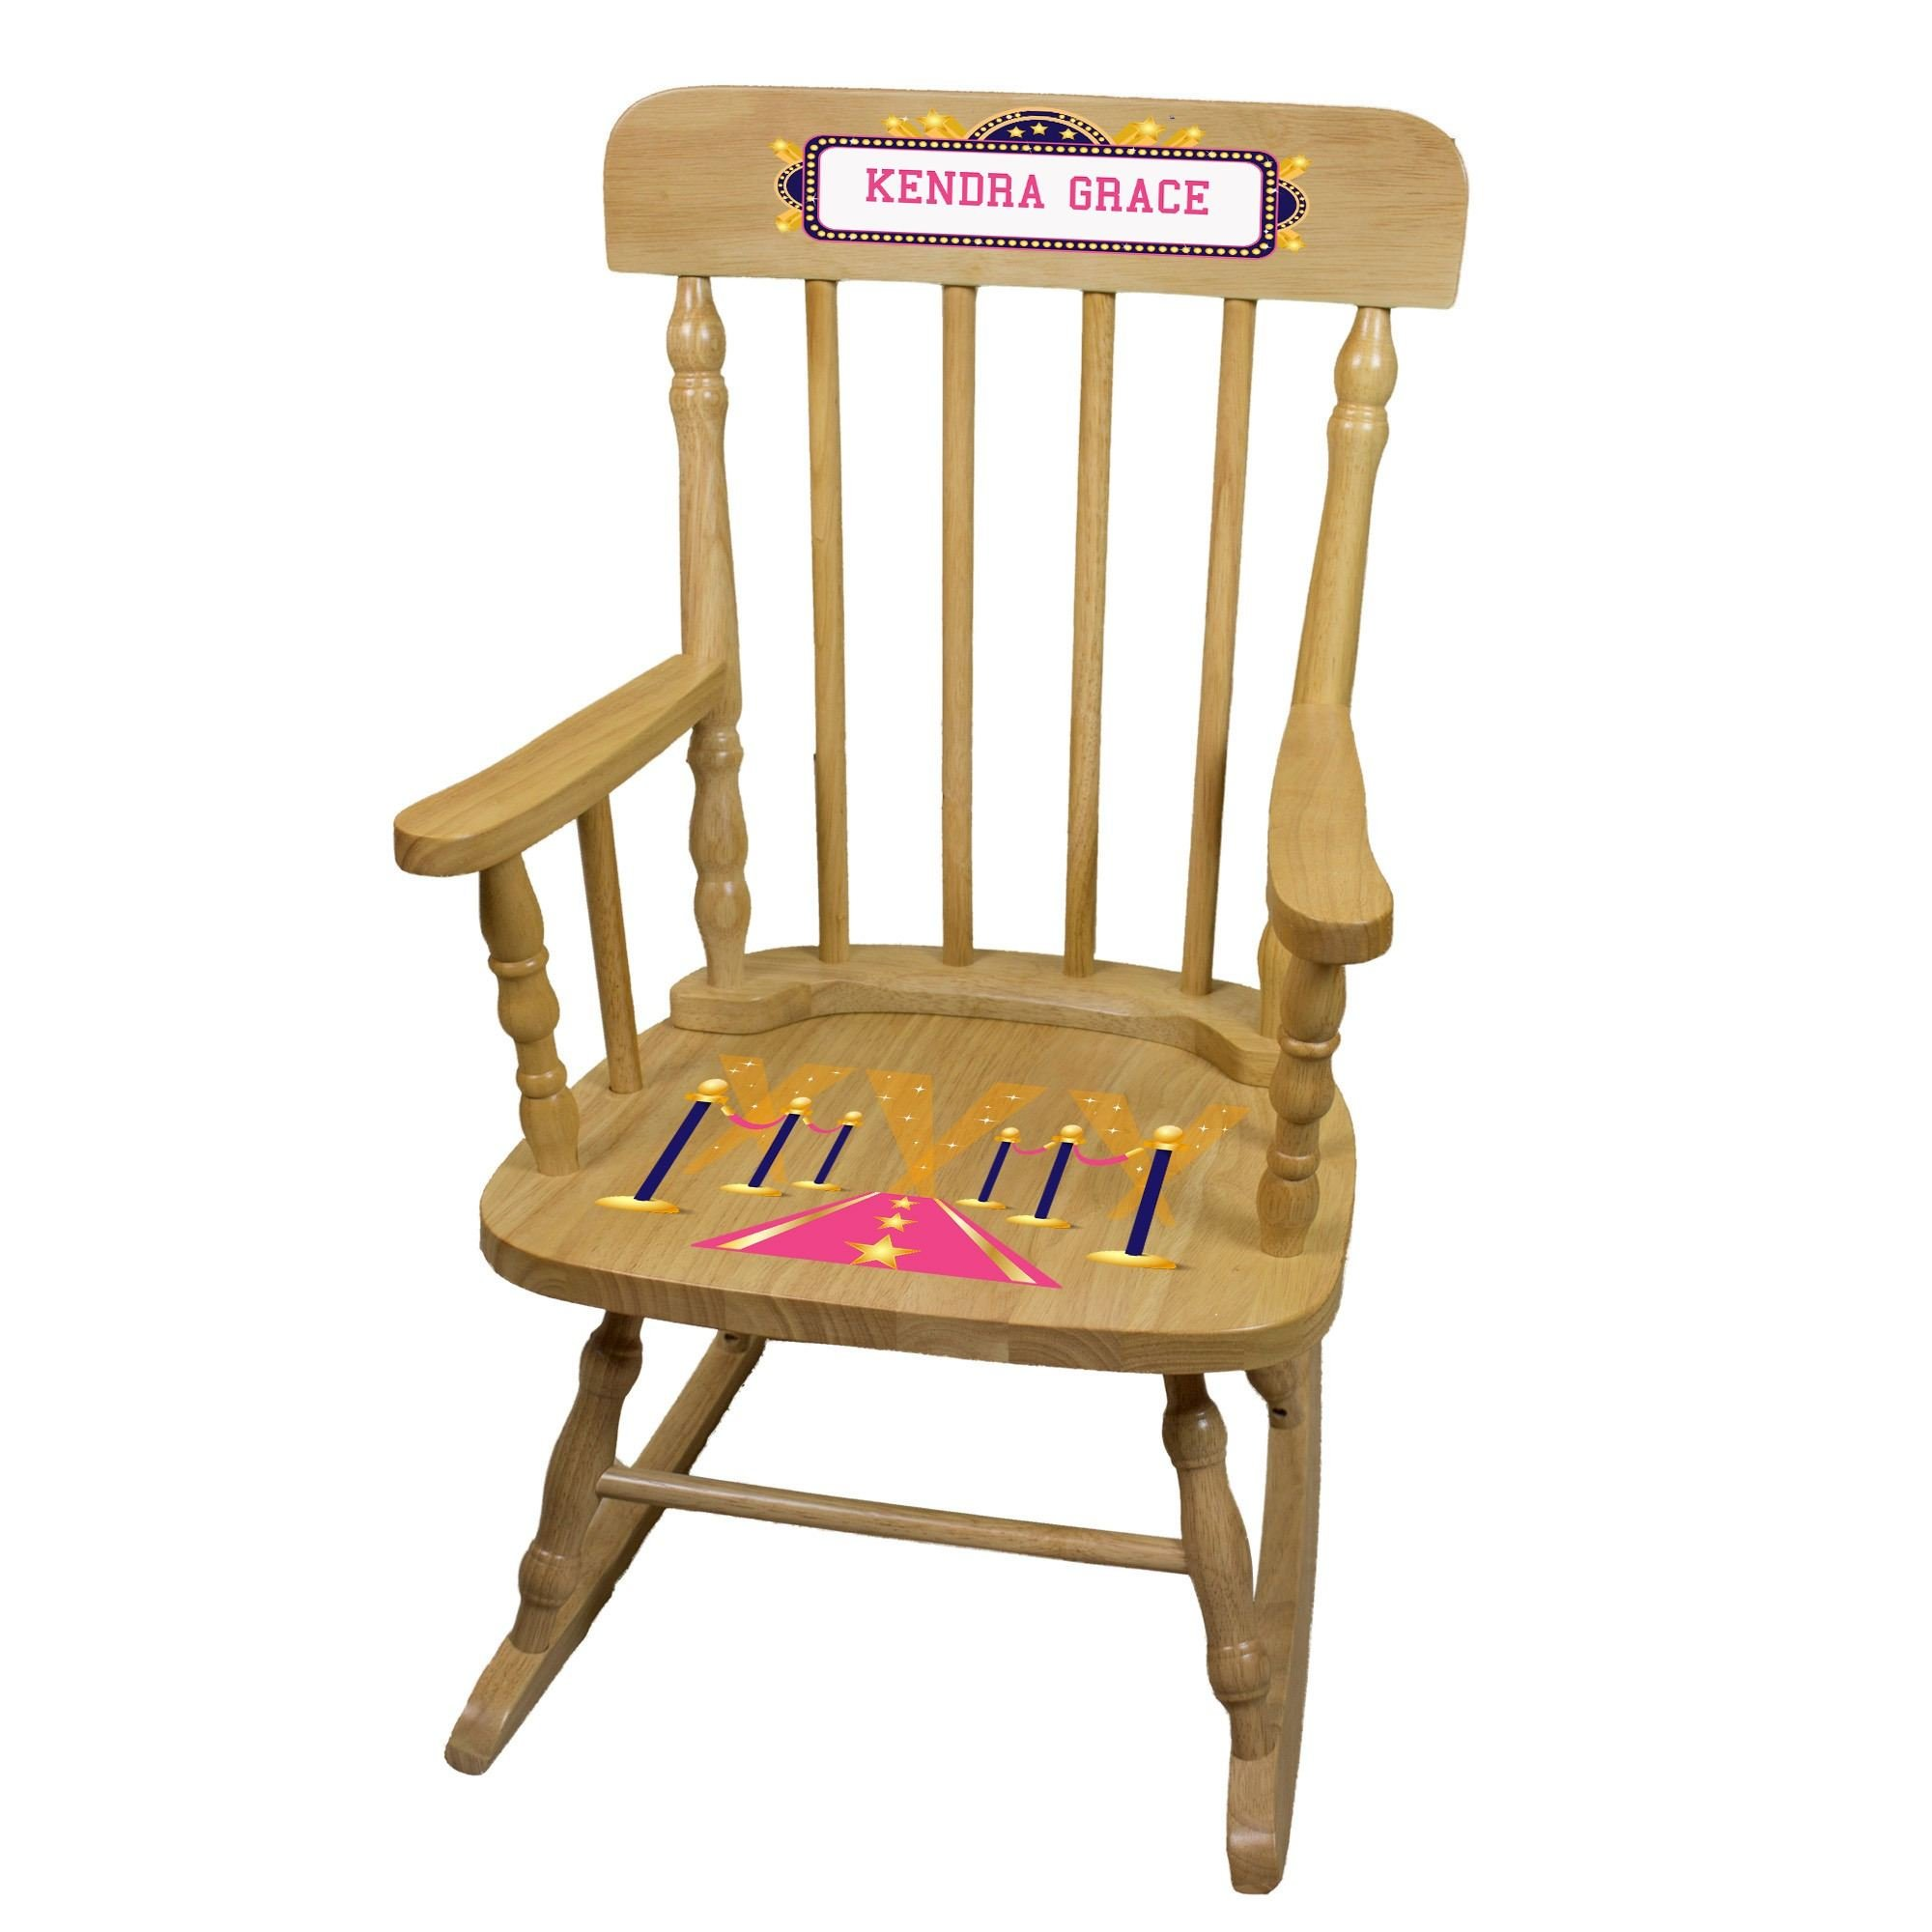 MyBambino Personalized A Star is Born pink Natural Wooden Childrens Rocking Chair